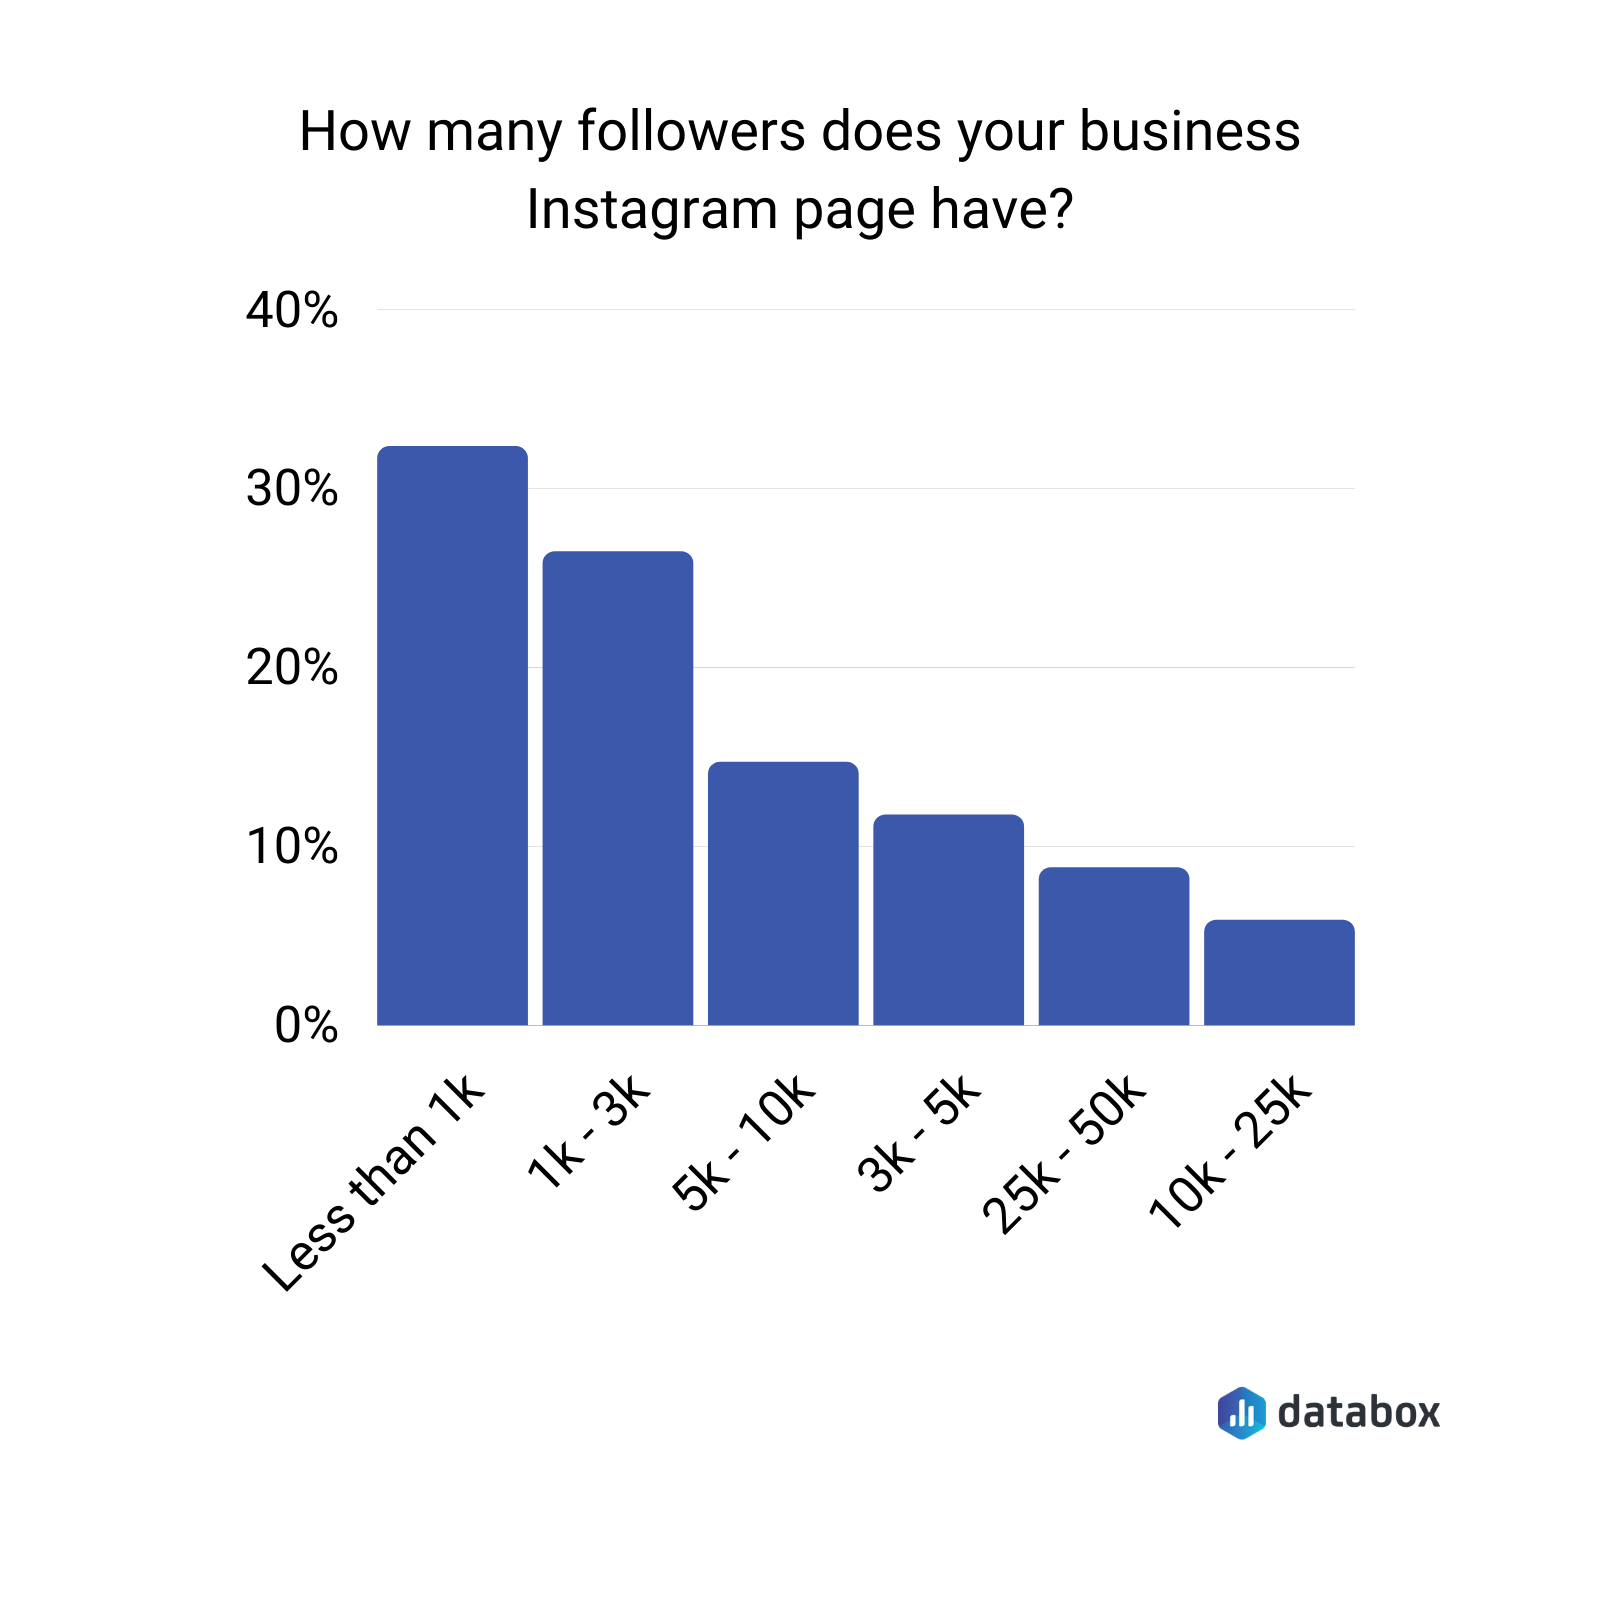 How many followers does your business Instagram page have?